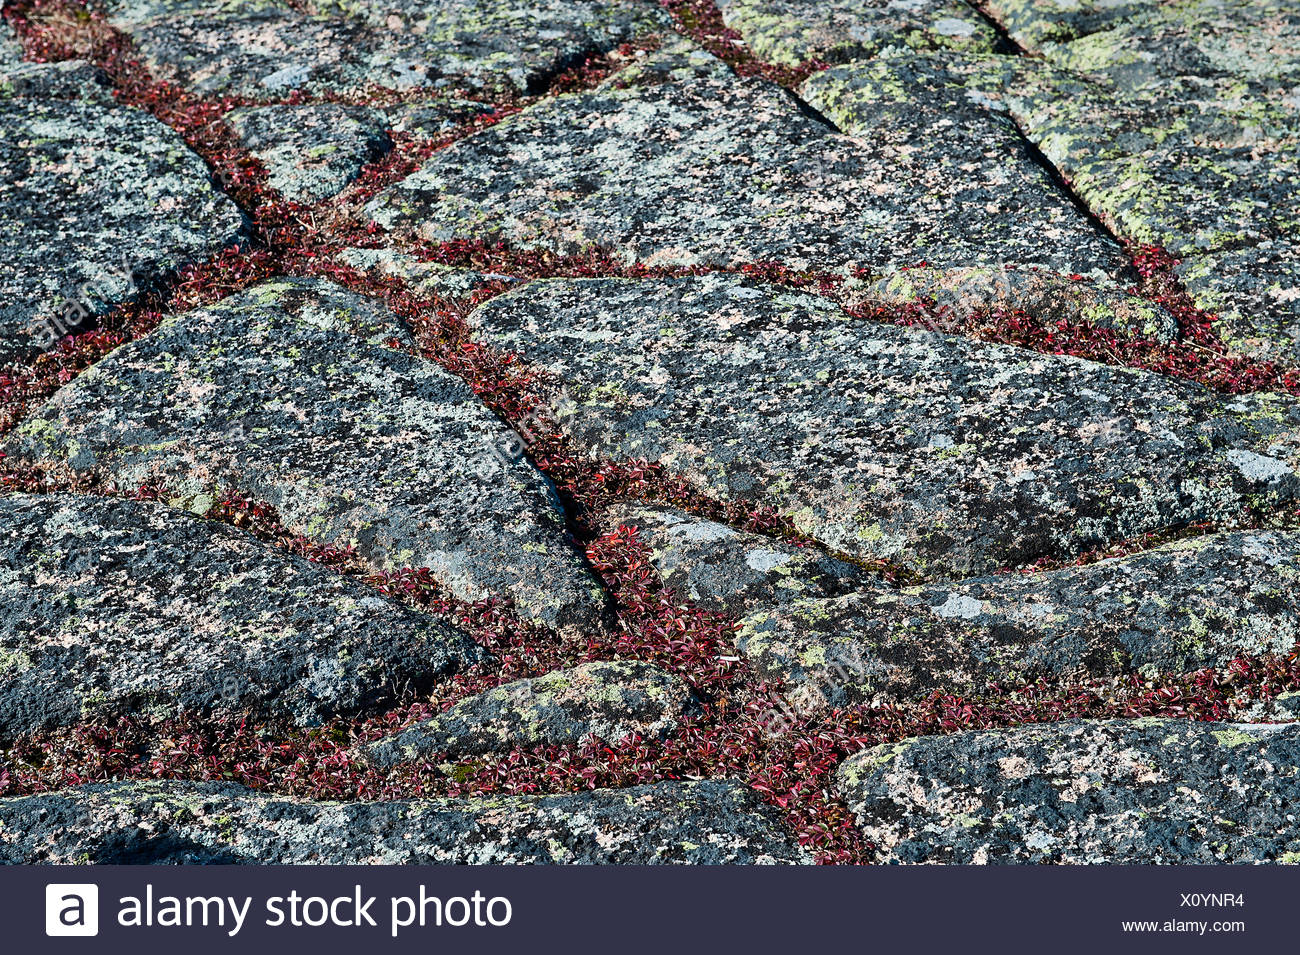 Ground cover and granite, Cadillac Mountain, Maine, USA - Stock Image